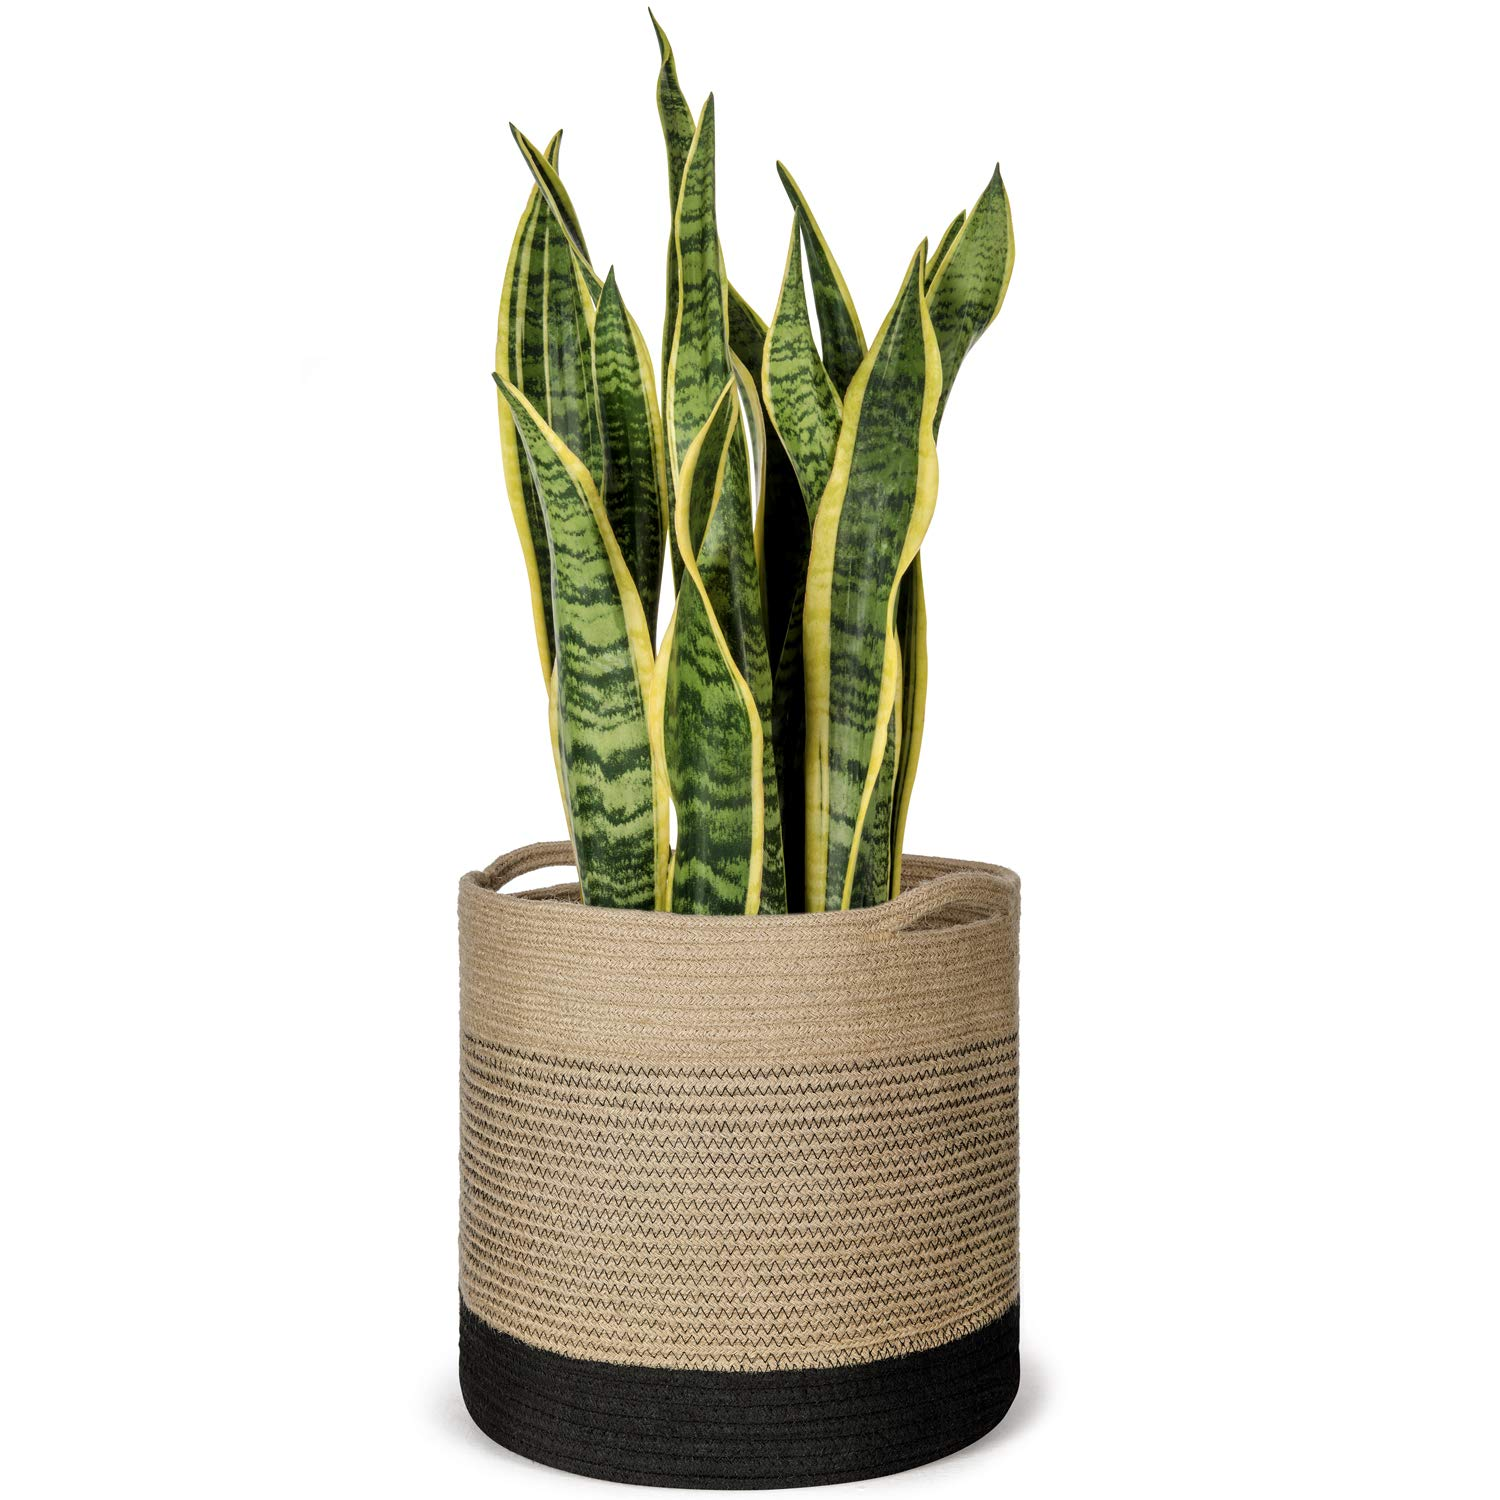 Mkono Jute Plant Basket Modern Indoor Planter Up to 11 Inch Pot Woven Storage Organizer with Handles Home Decor, 12 x 12